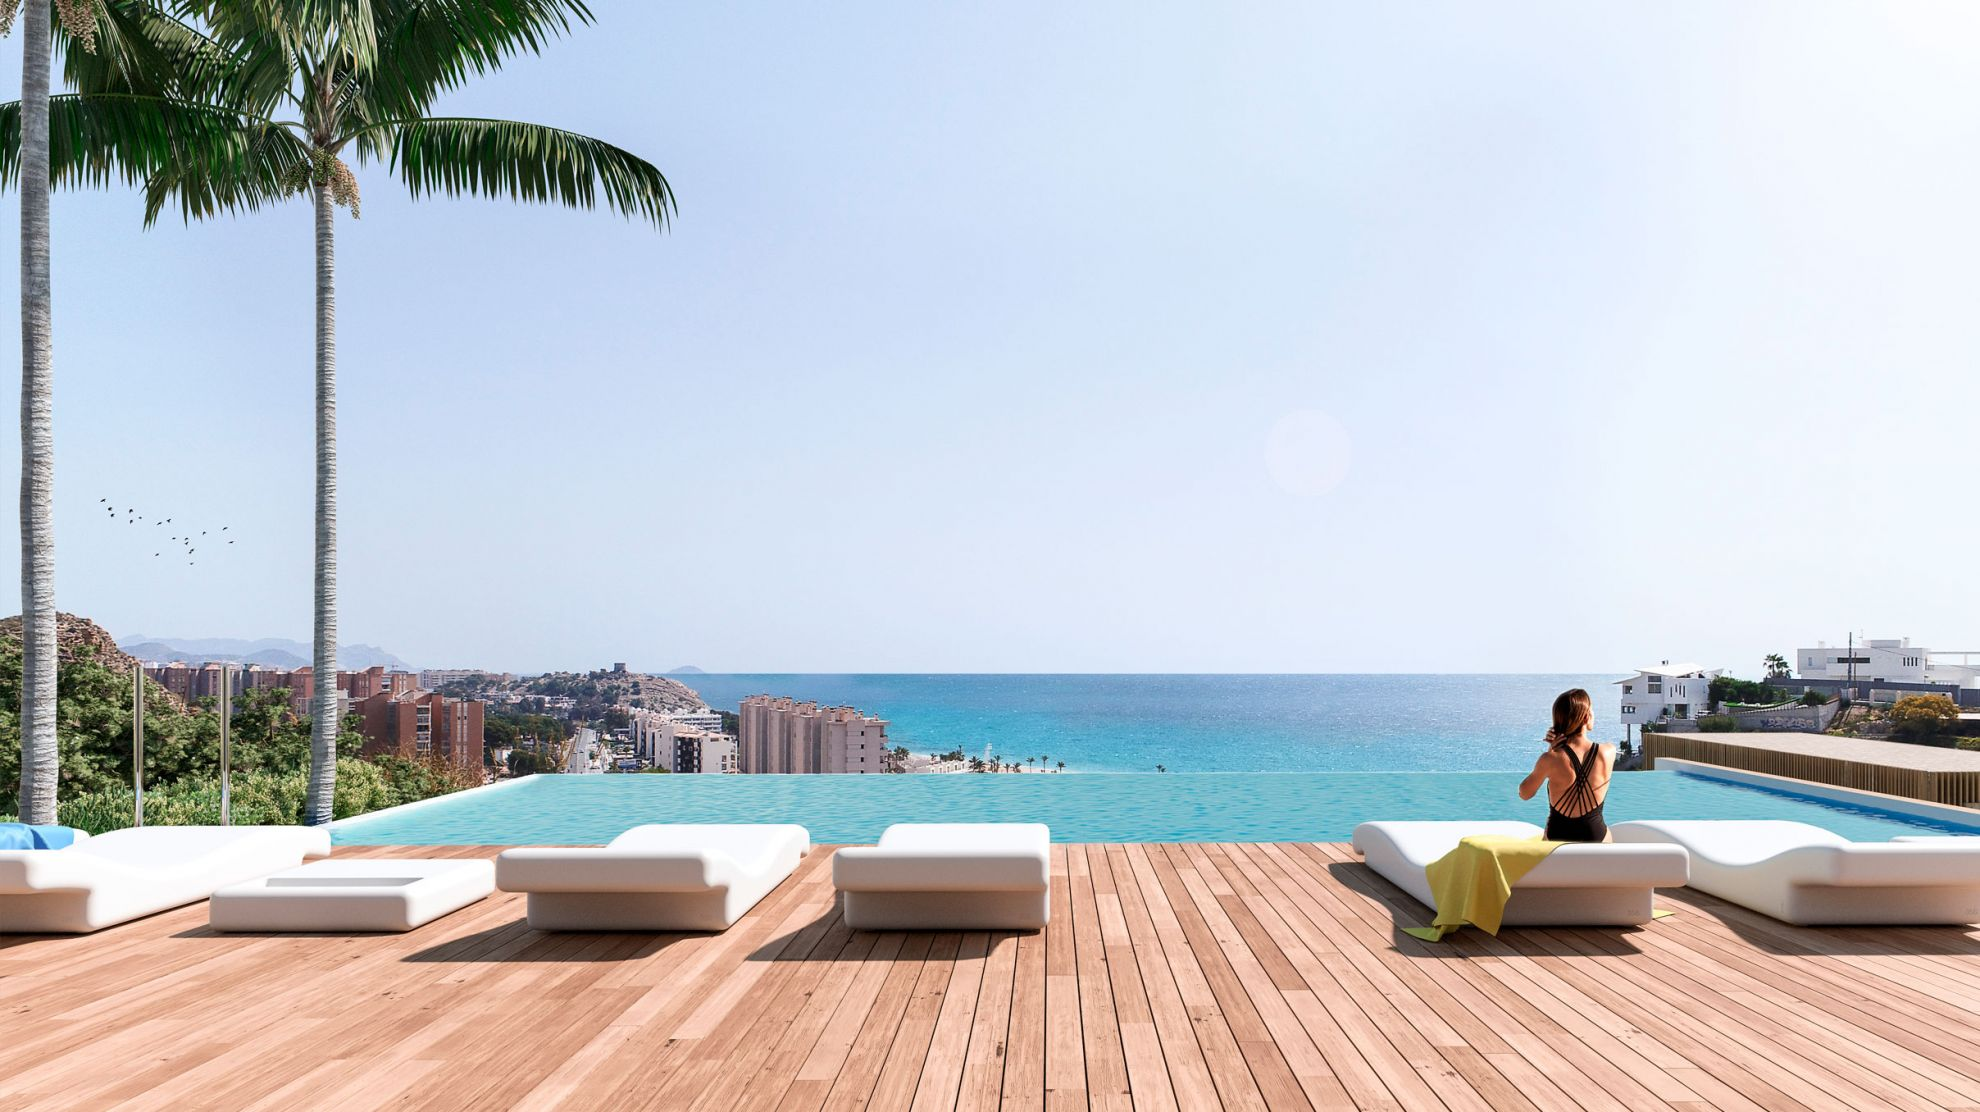 2 and 3 bedroom penthouse-style apartments with big terraces overlookg the sea. House 11 10